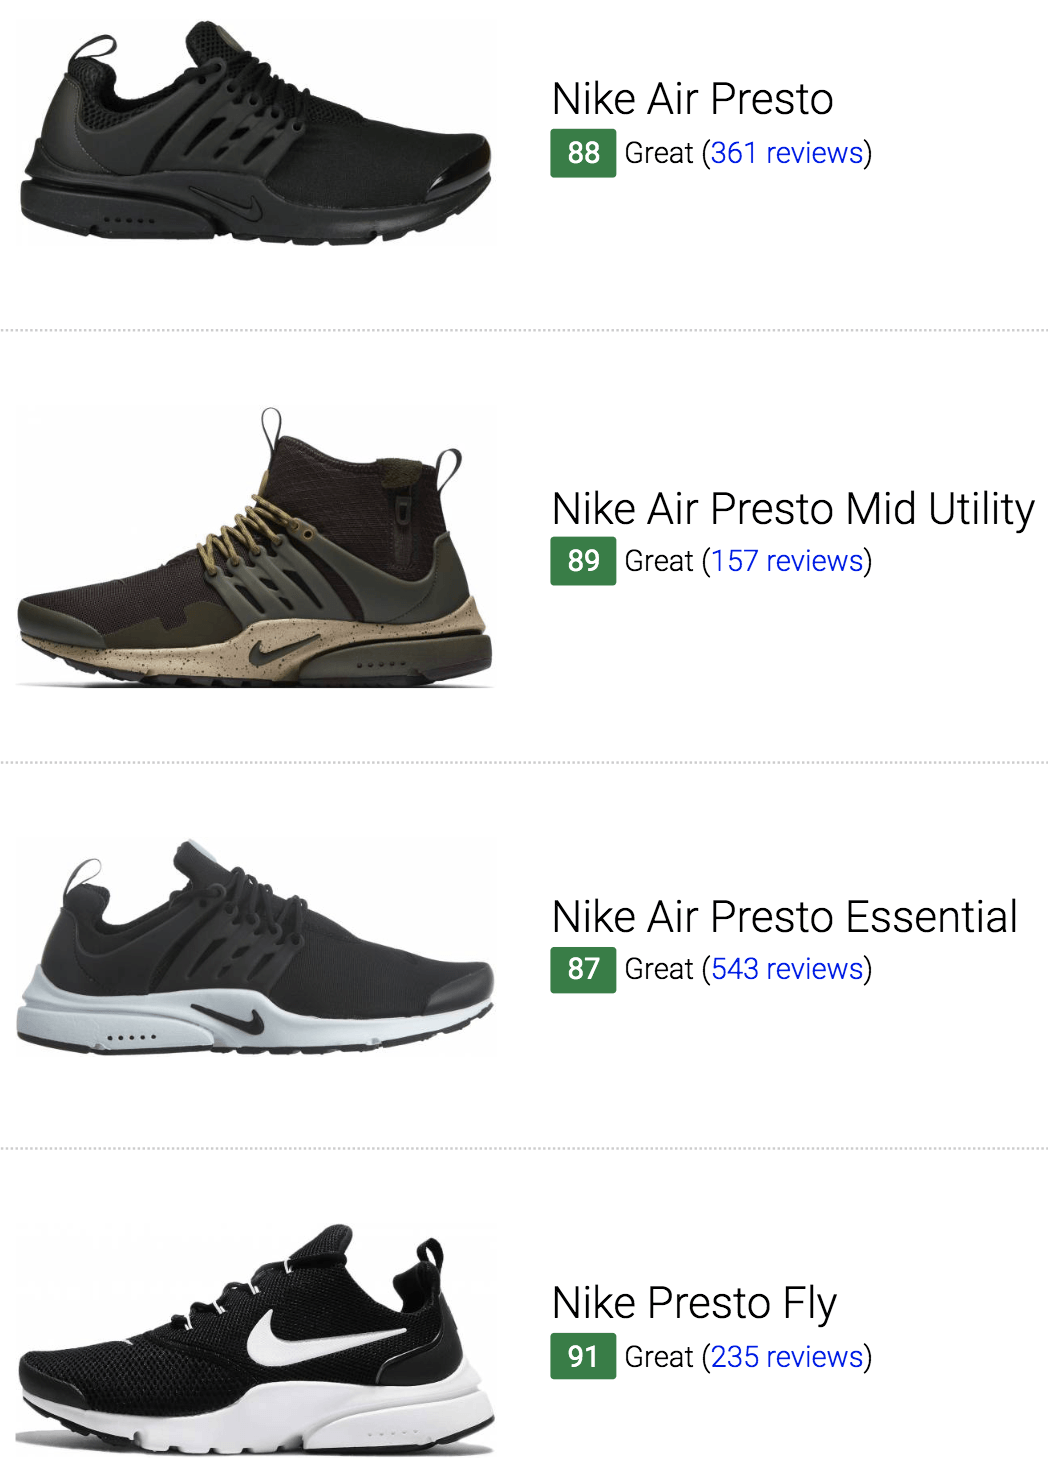 12 Best Nike Air Presto Sneakers (Buyer's Guide) | RunRepeat